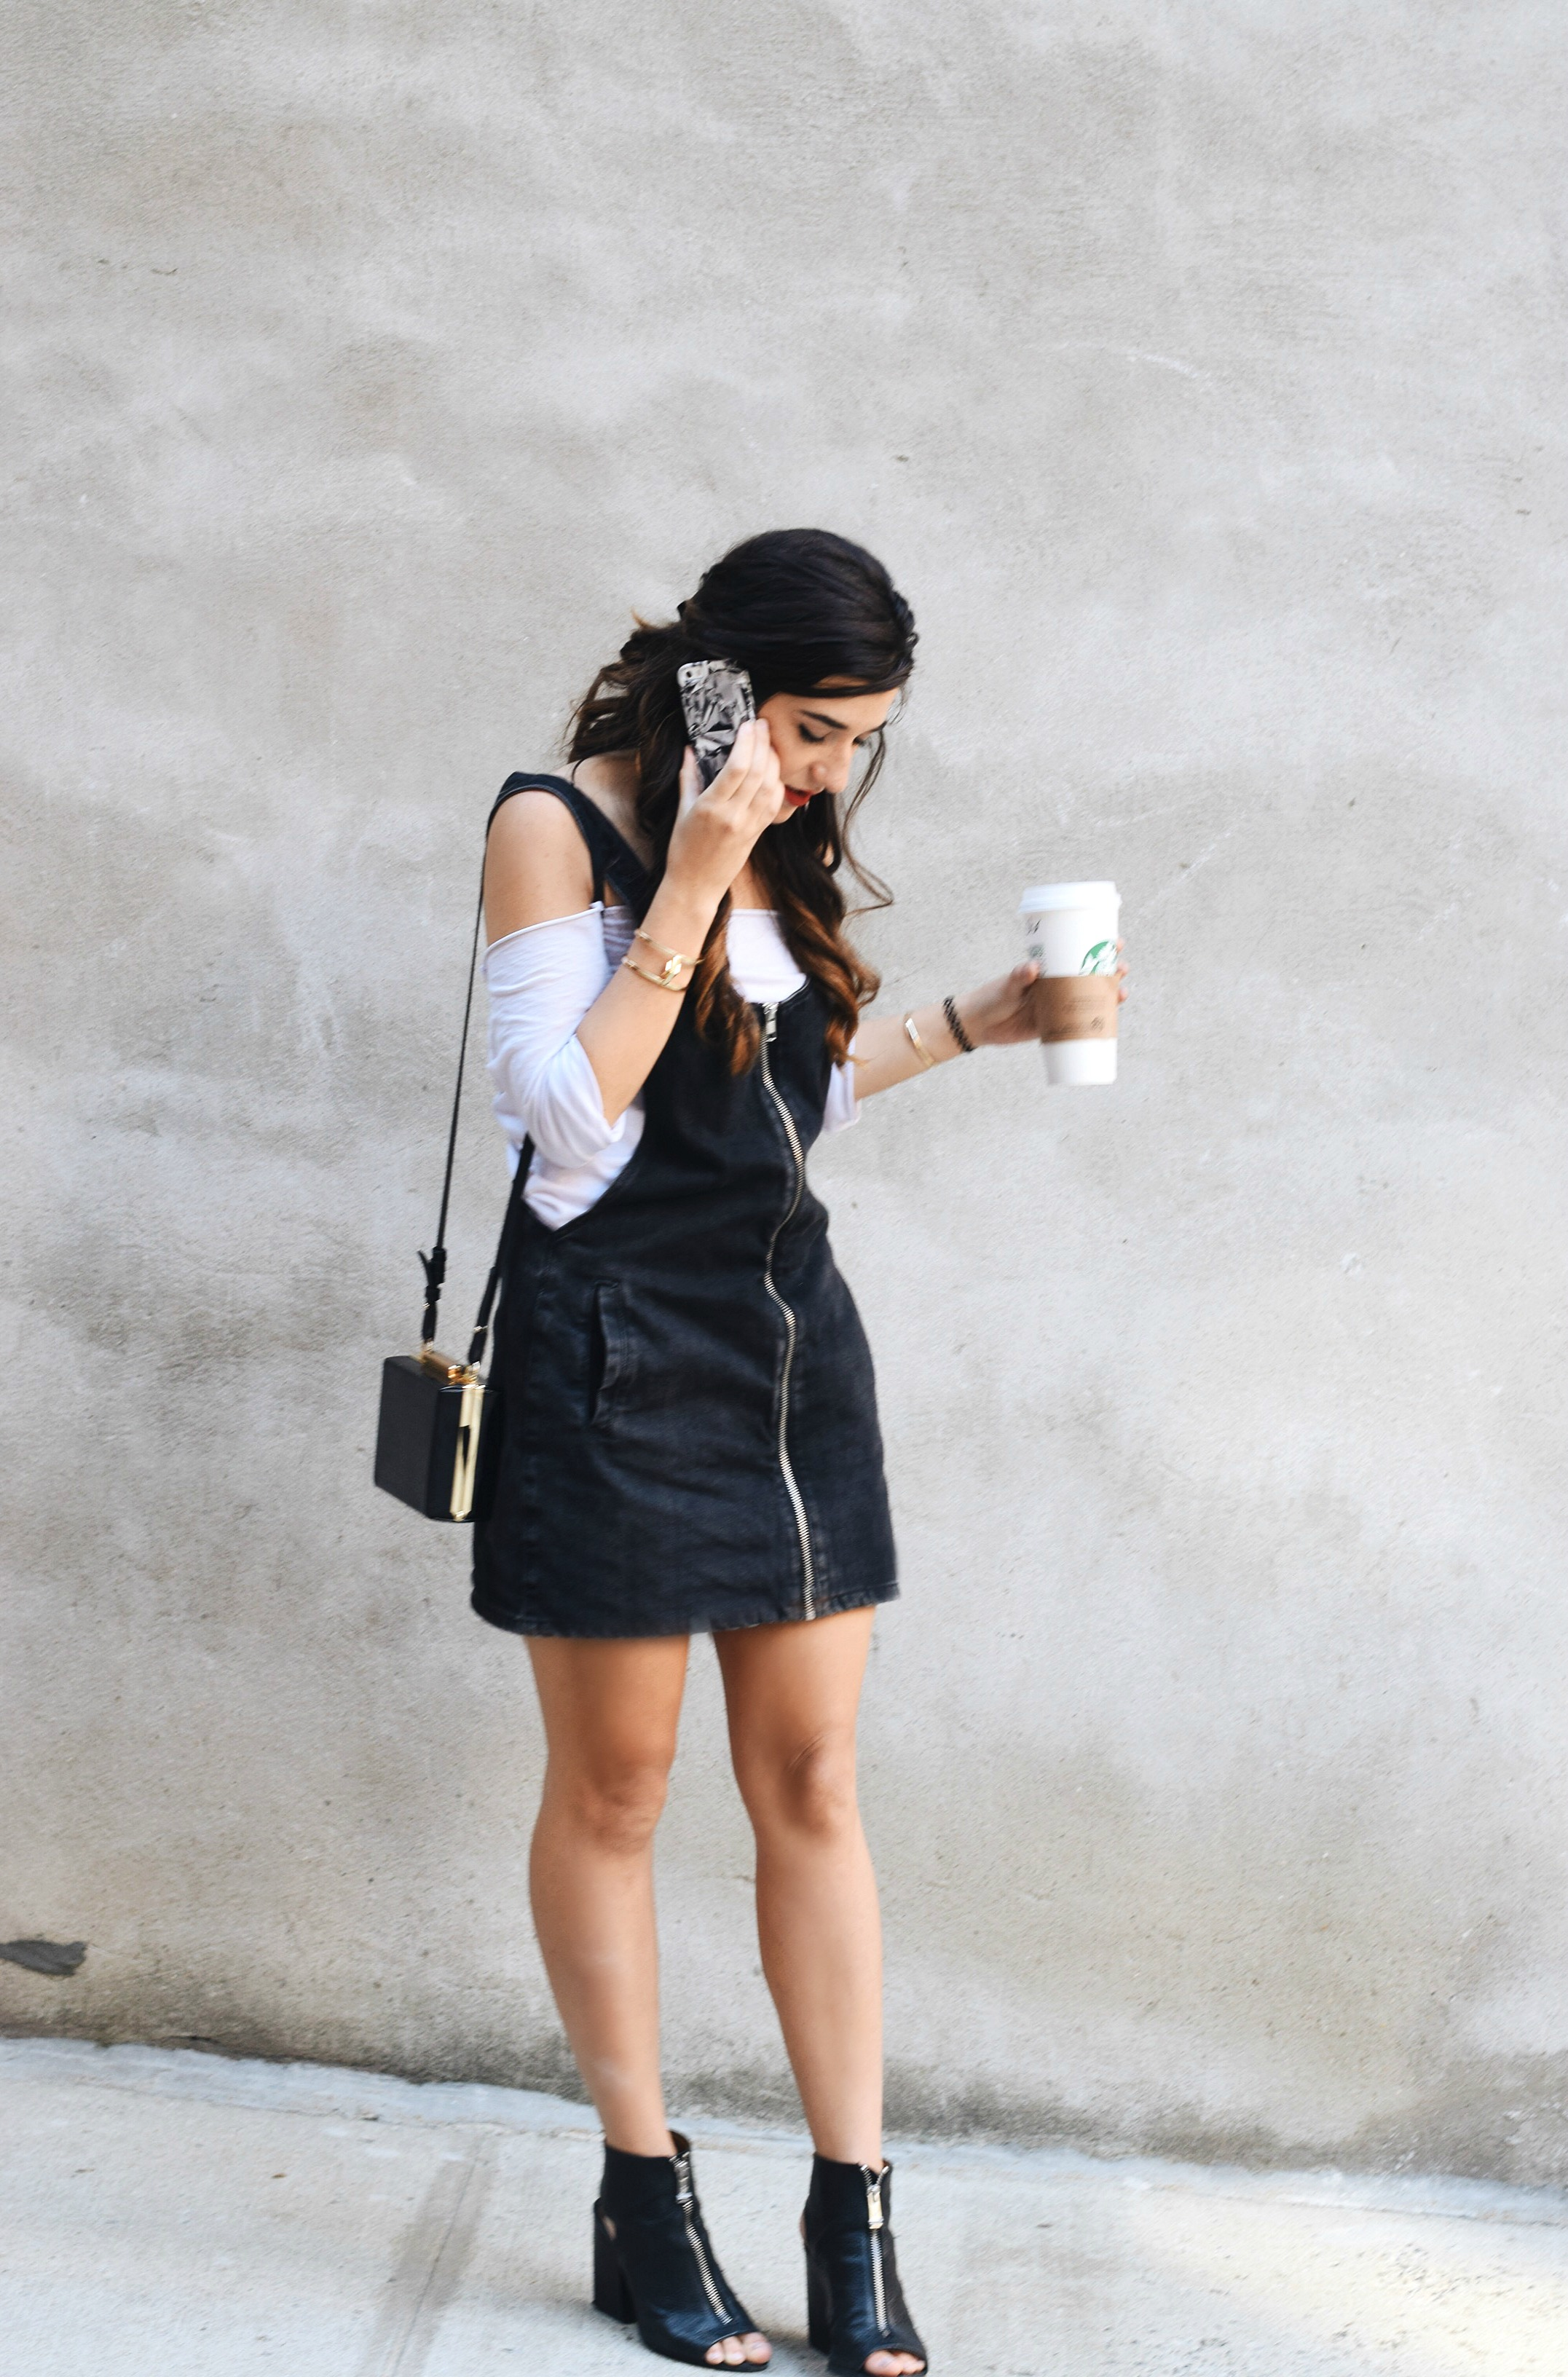 Jean Dress Overalls Off The Shoulder Top Louboutins & Love Fashion Blog Esther Santer Street Style NYC Hair Box Clutch Shoes Denim Gold Jewelry Model Girl Women Zara Trendy Outfit OOTD Bag Inspo Shop Fall Collar Necklace Zipper Black Booties Nordstrom.JPG